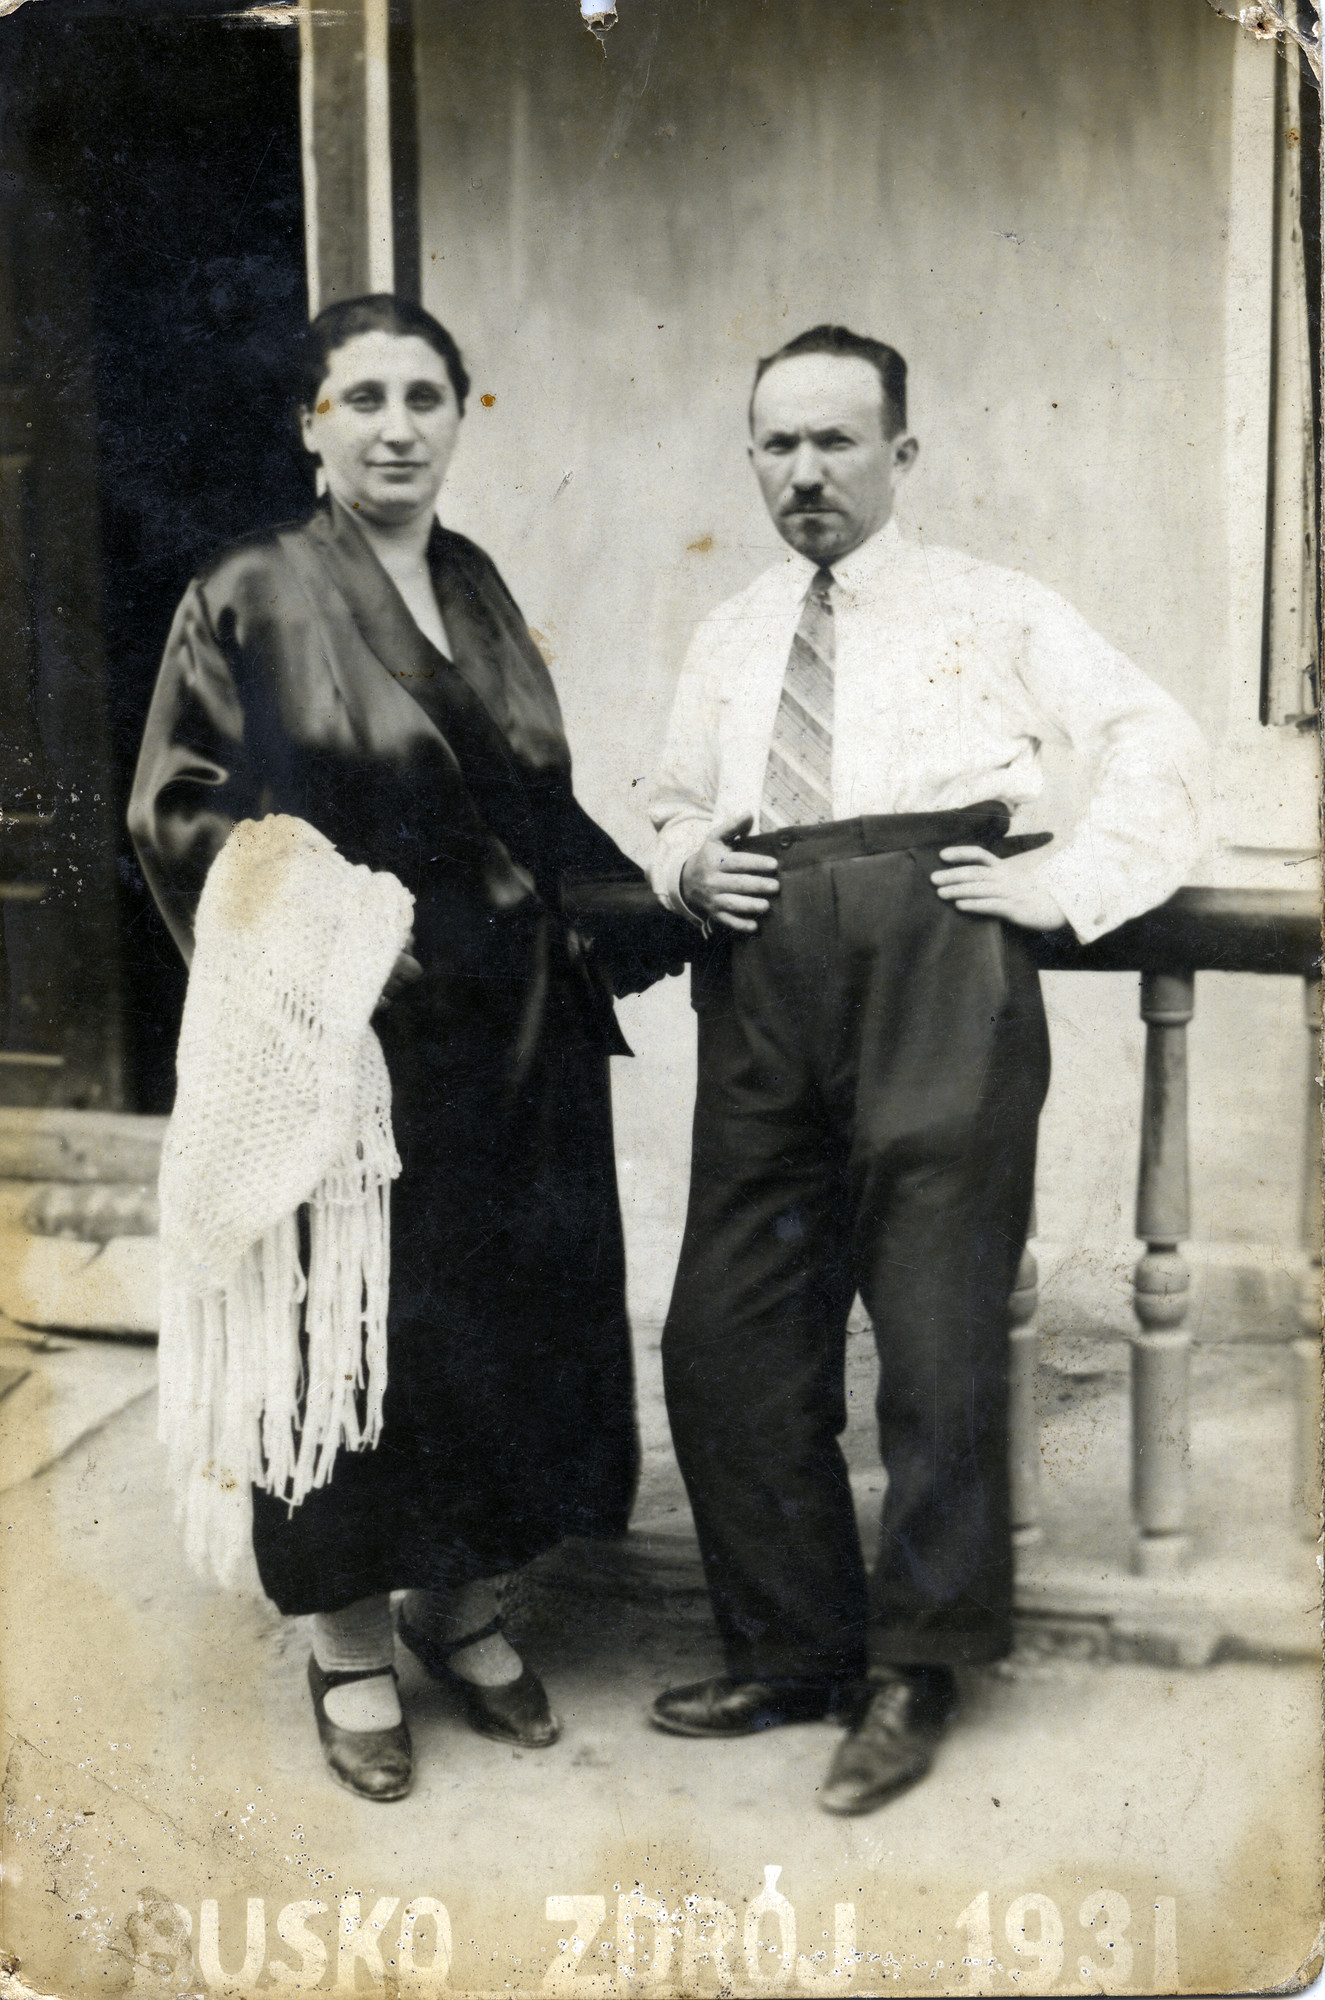 Portrait of Israel and Rivka Rybak Miedzyrzecki in Busko Zroj.